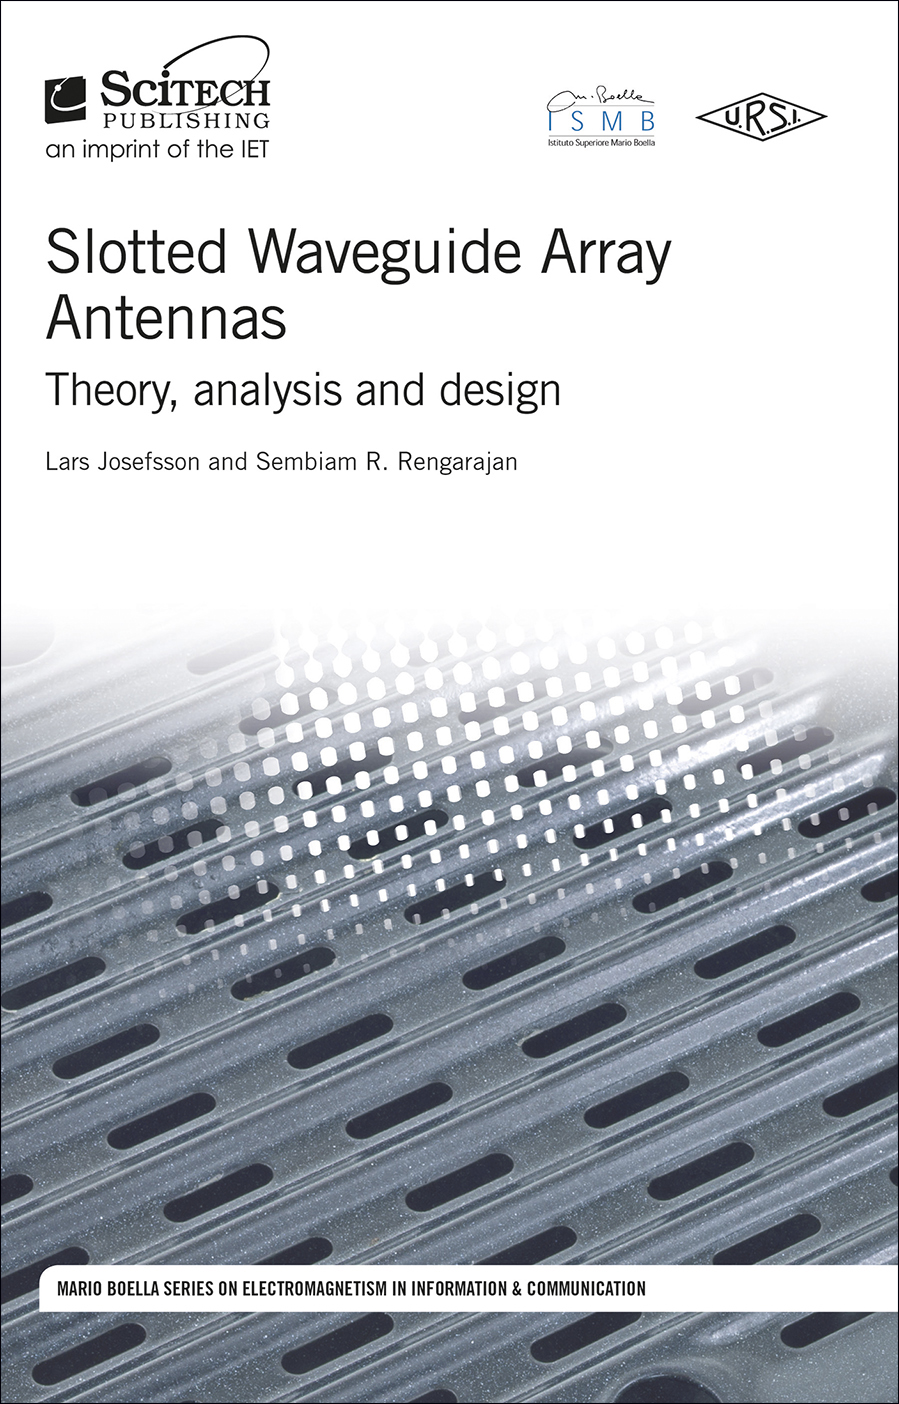 Slotted Waveguide Array Antennas, Theory, analysis and design